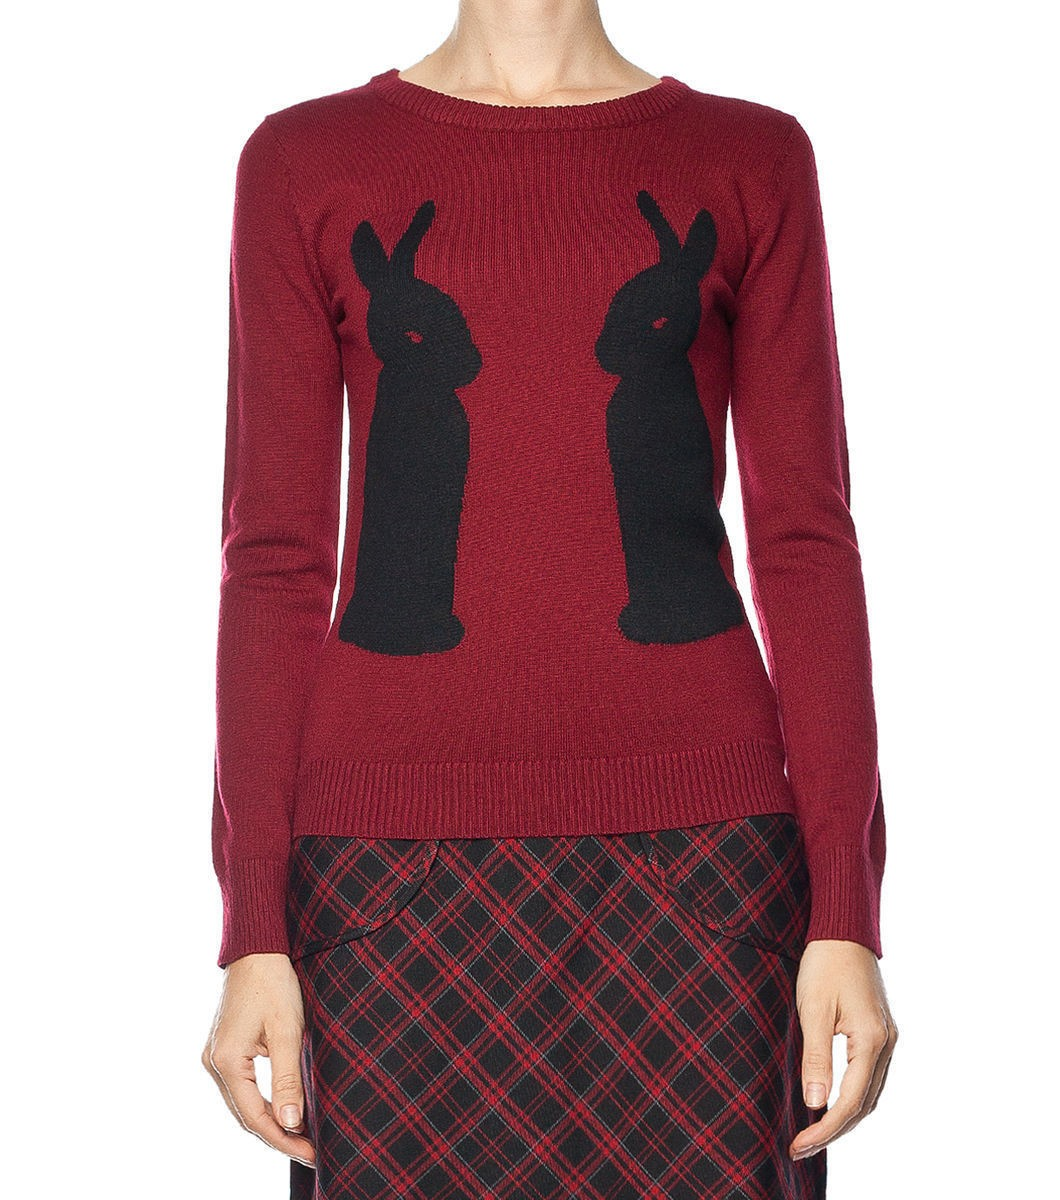 Evil Rabbit Jumper